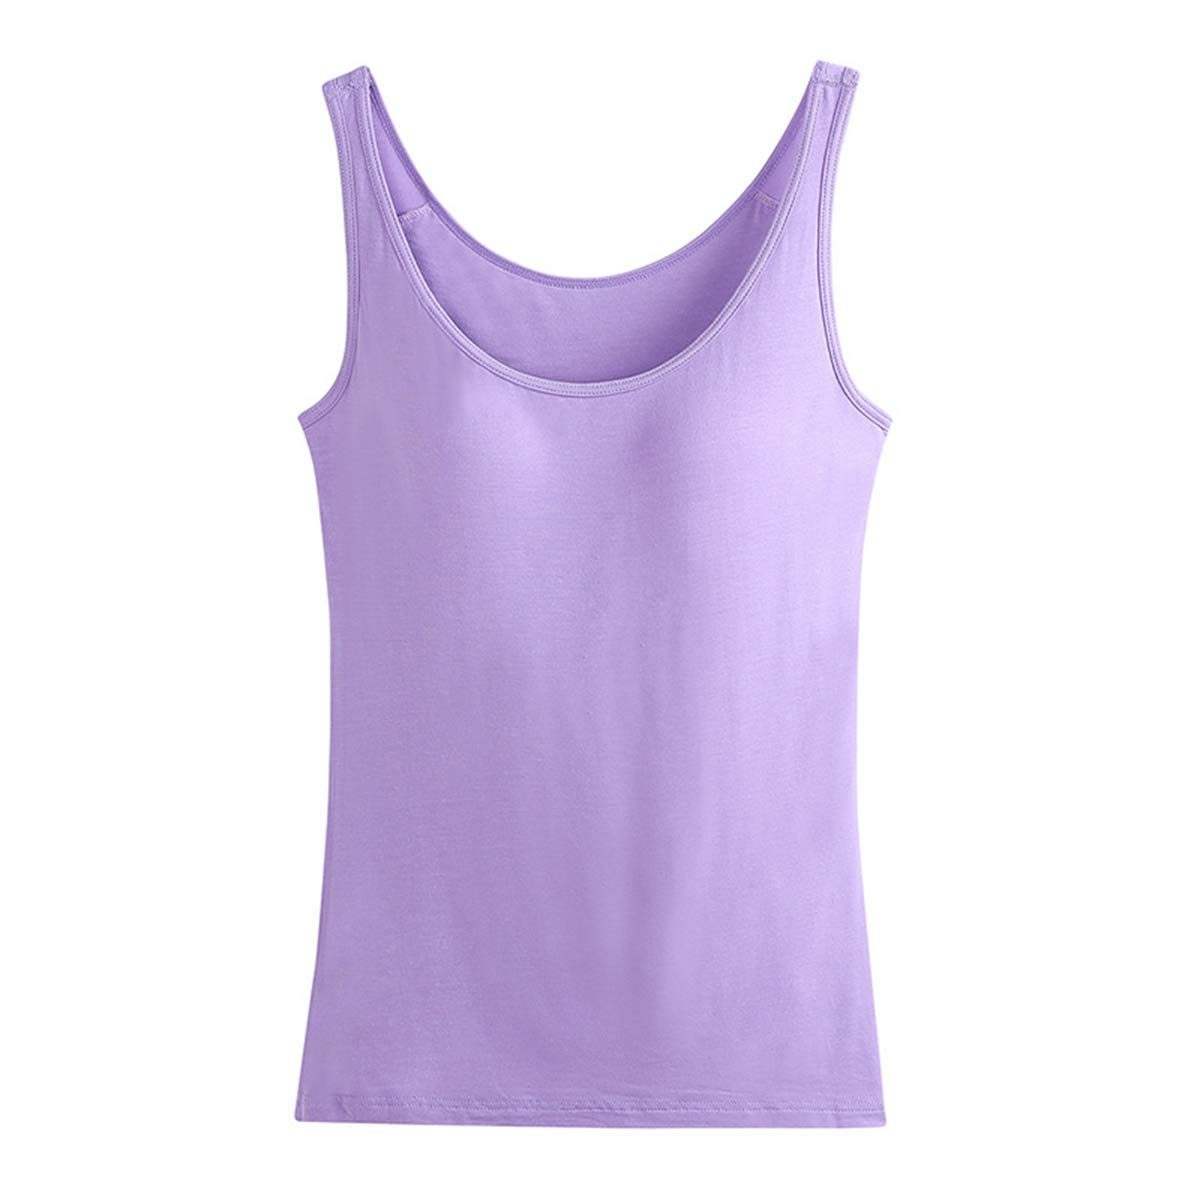 c4aeefa31d Get Quotations · Oulinect Ladies Cotton Built-in Padded Bra Tank Top Active  Workout Camisoles Top for Women